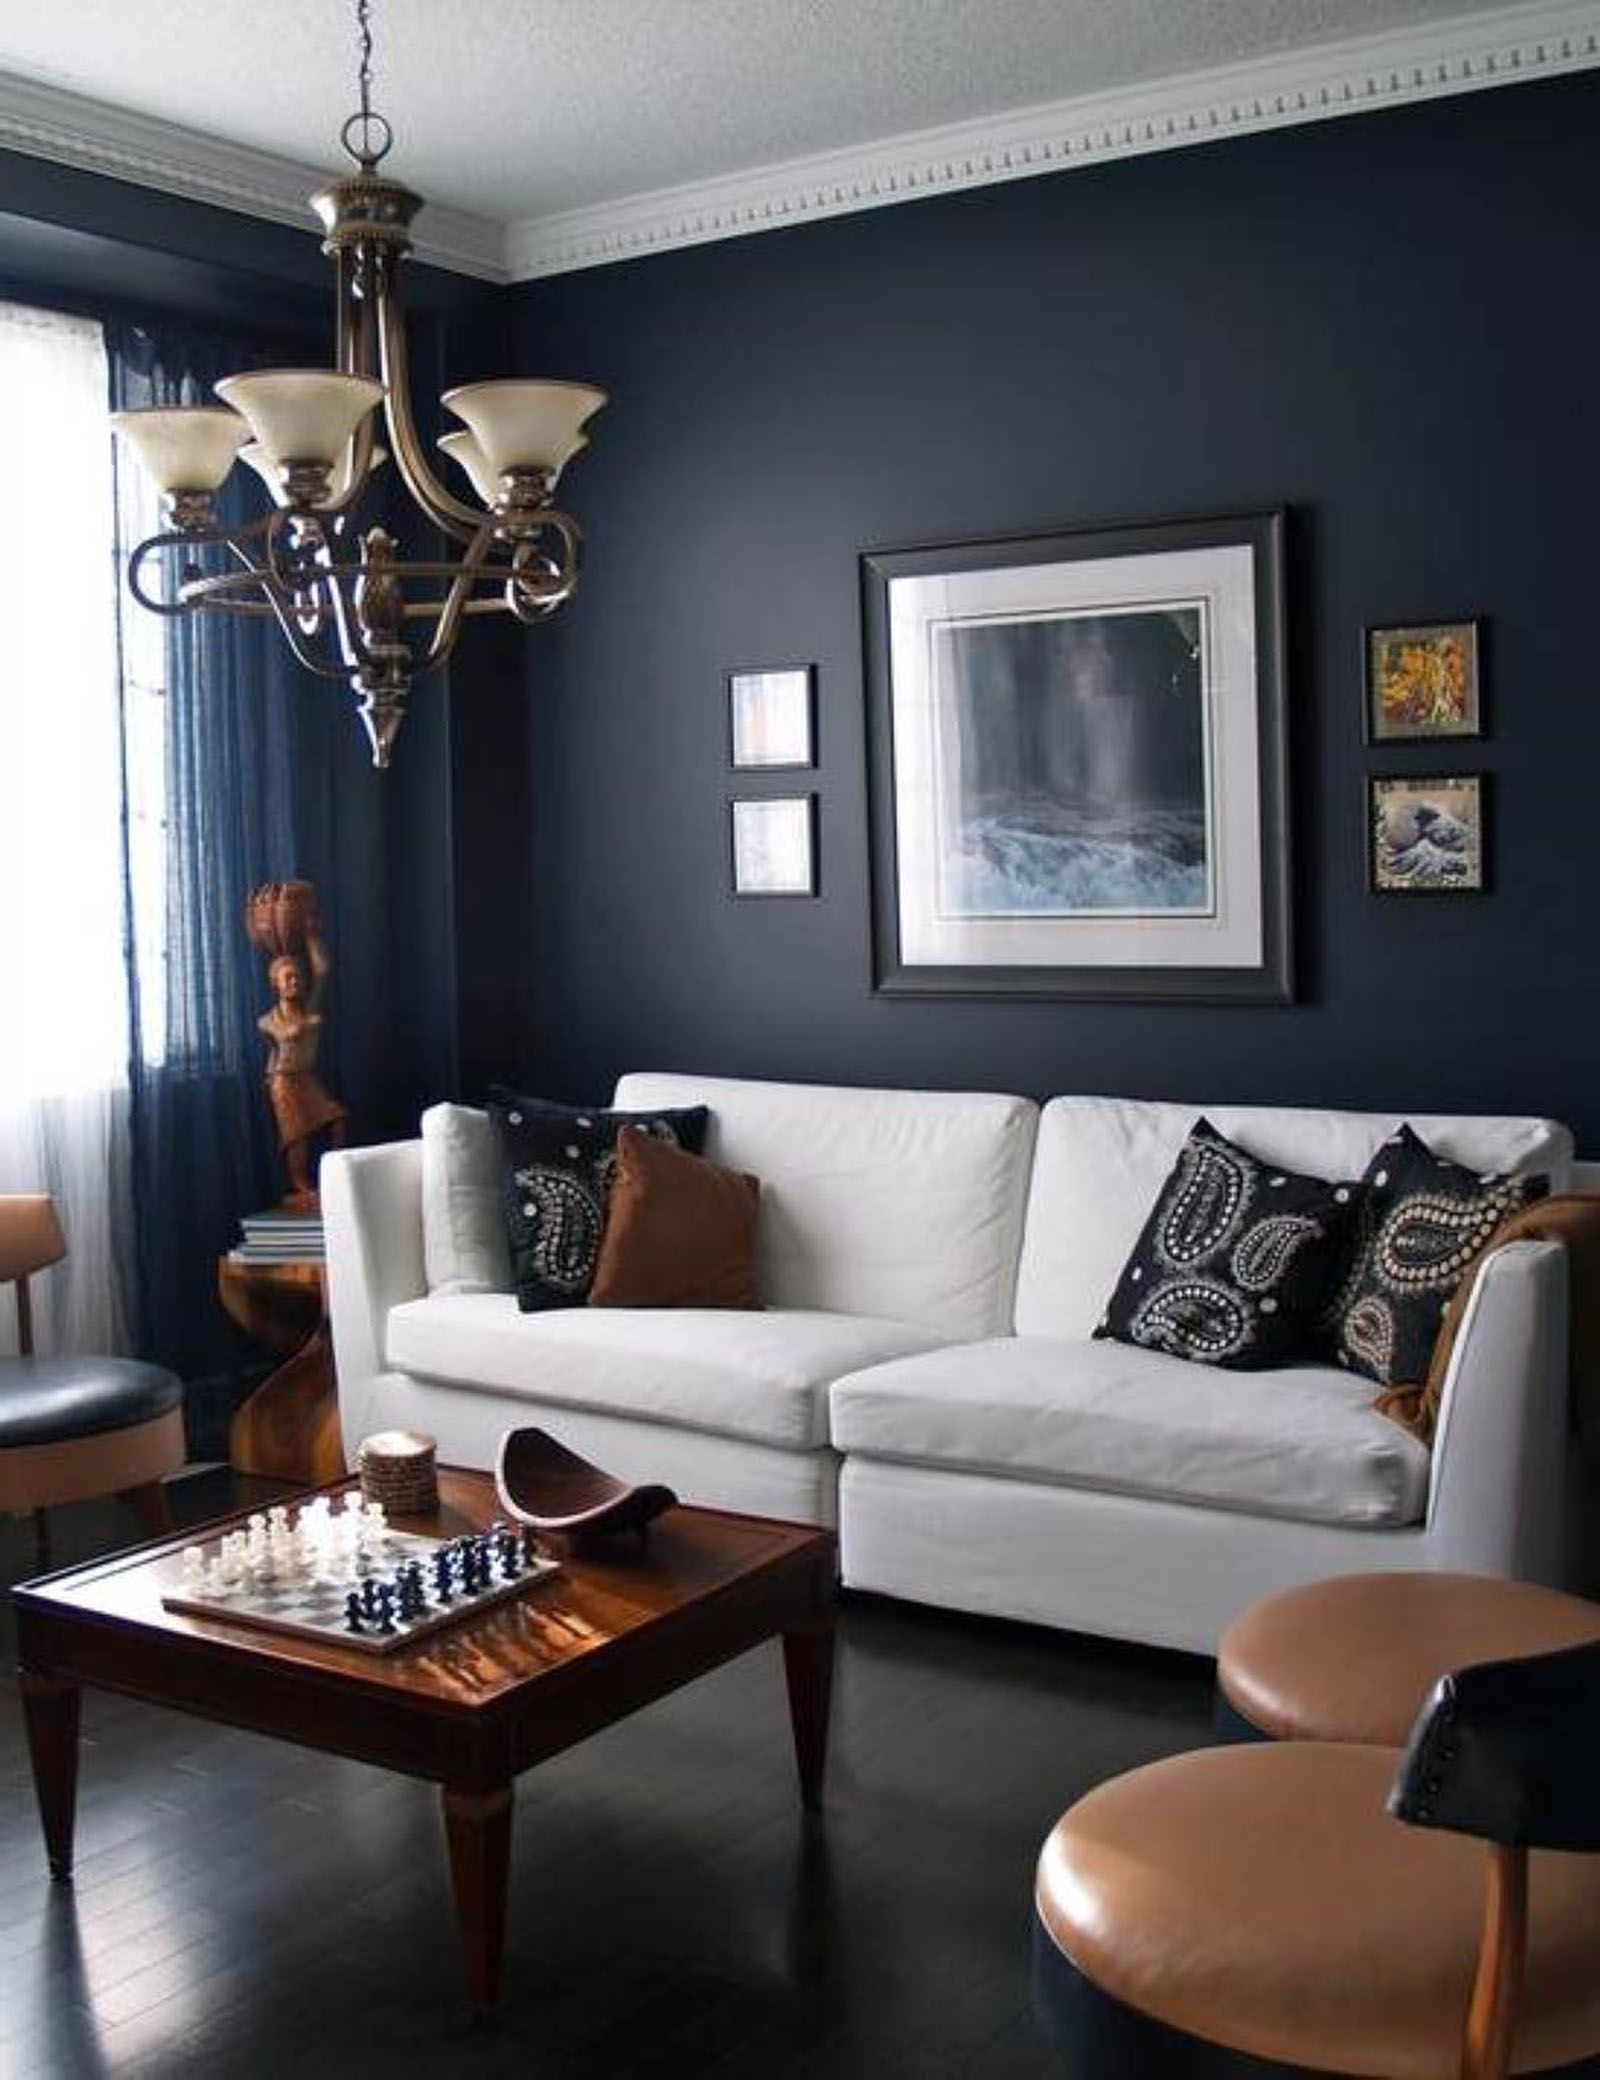 25 Reasons To Make Your Own Feng Shui Living Room Now